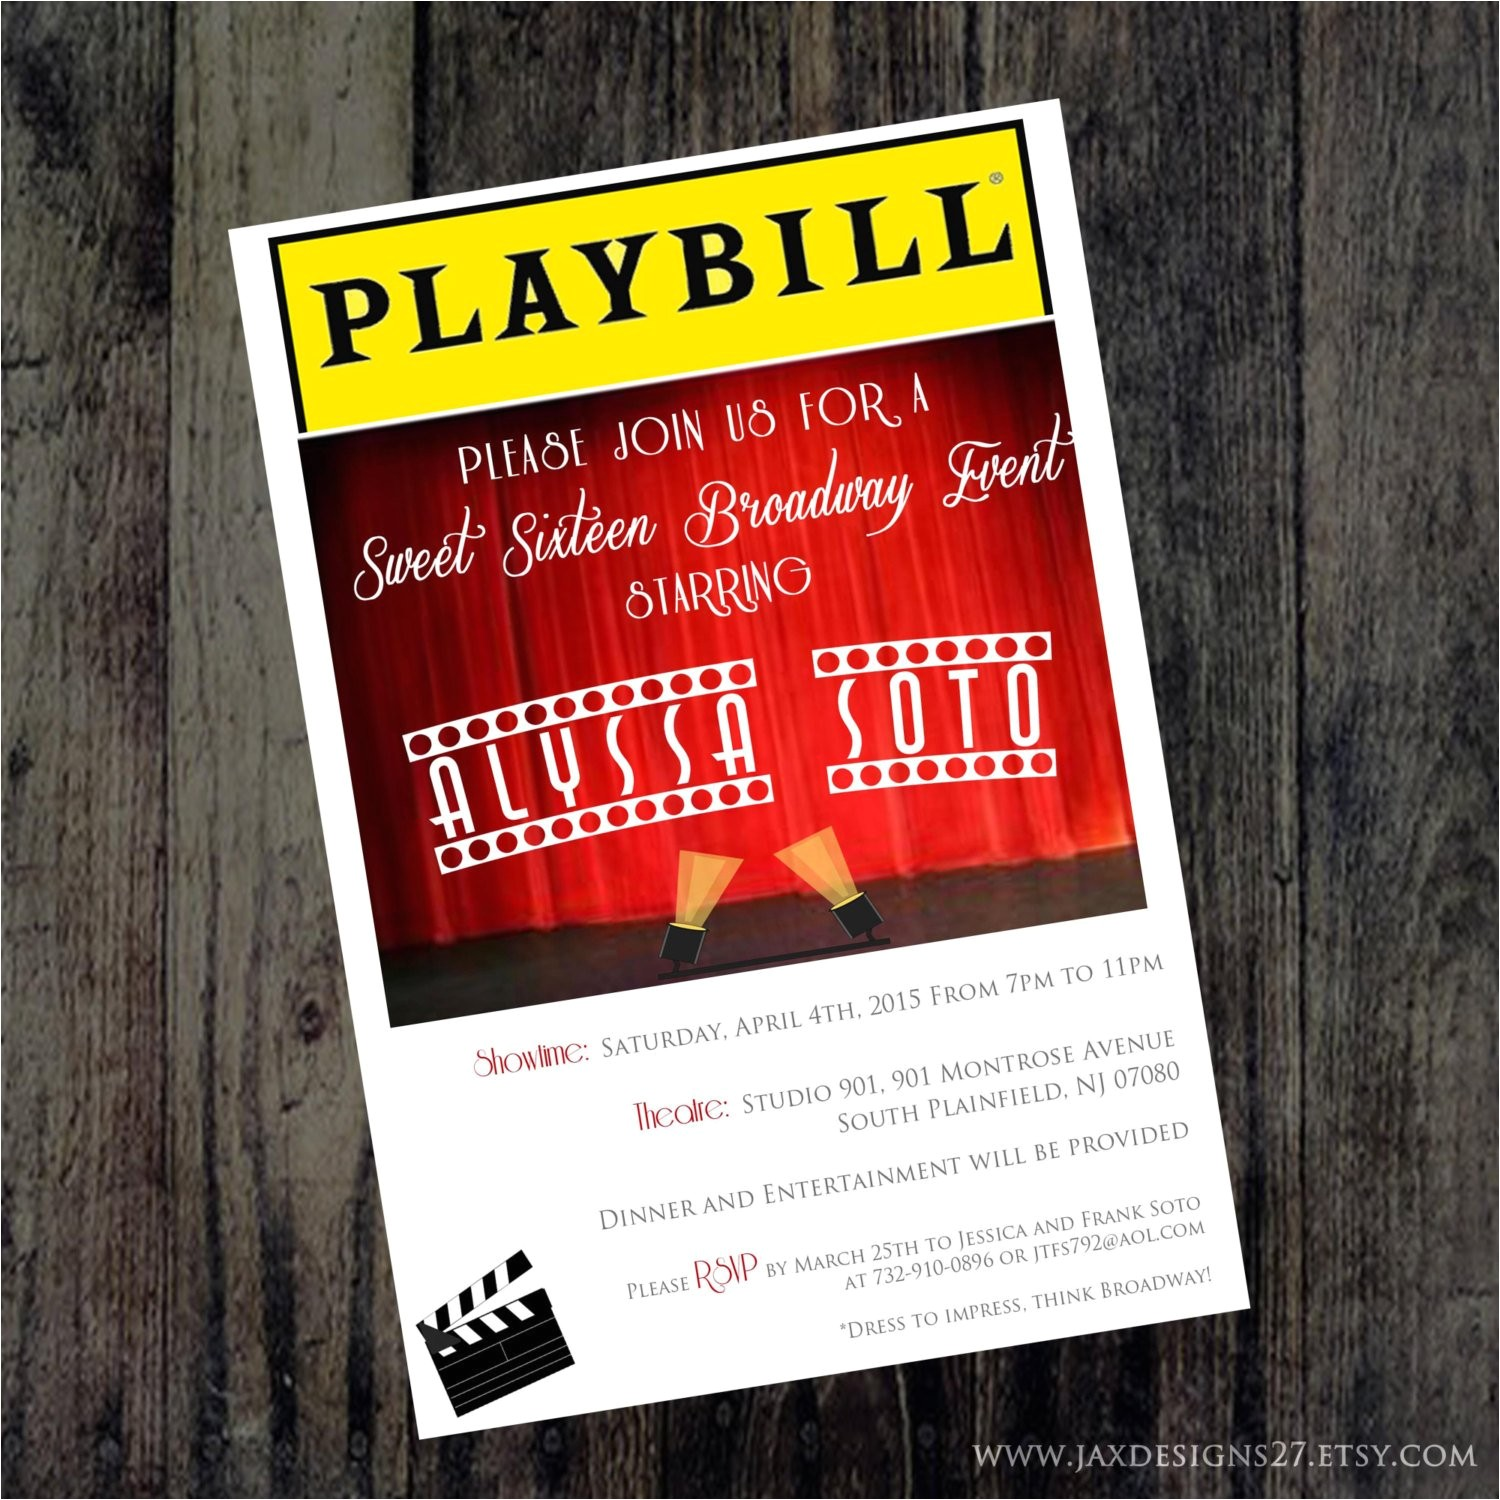 playbill invitations broadway theme